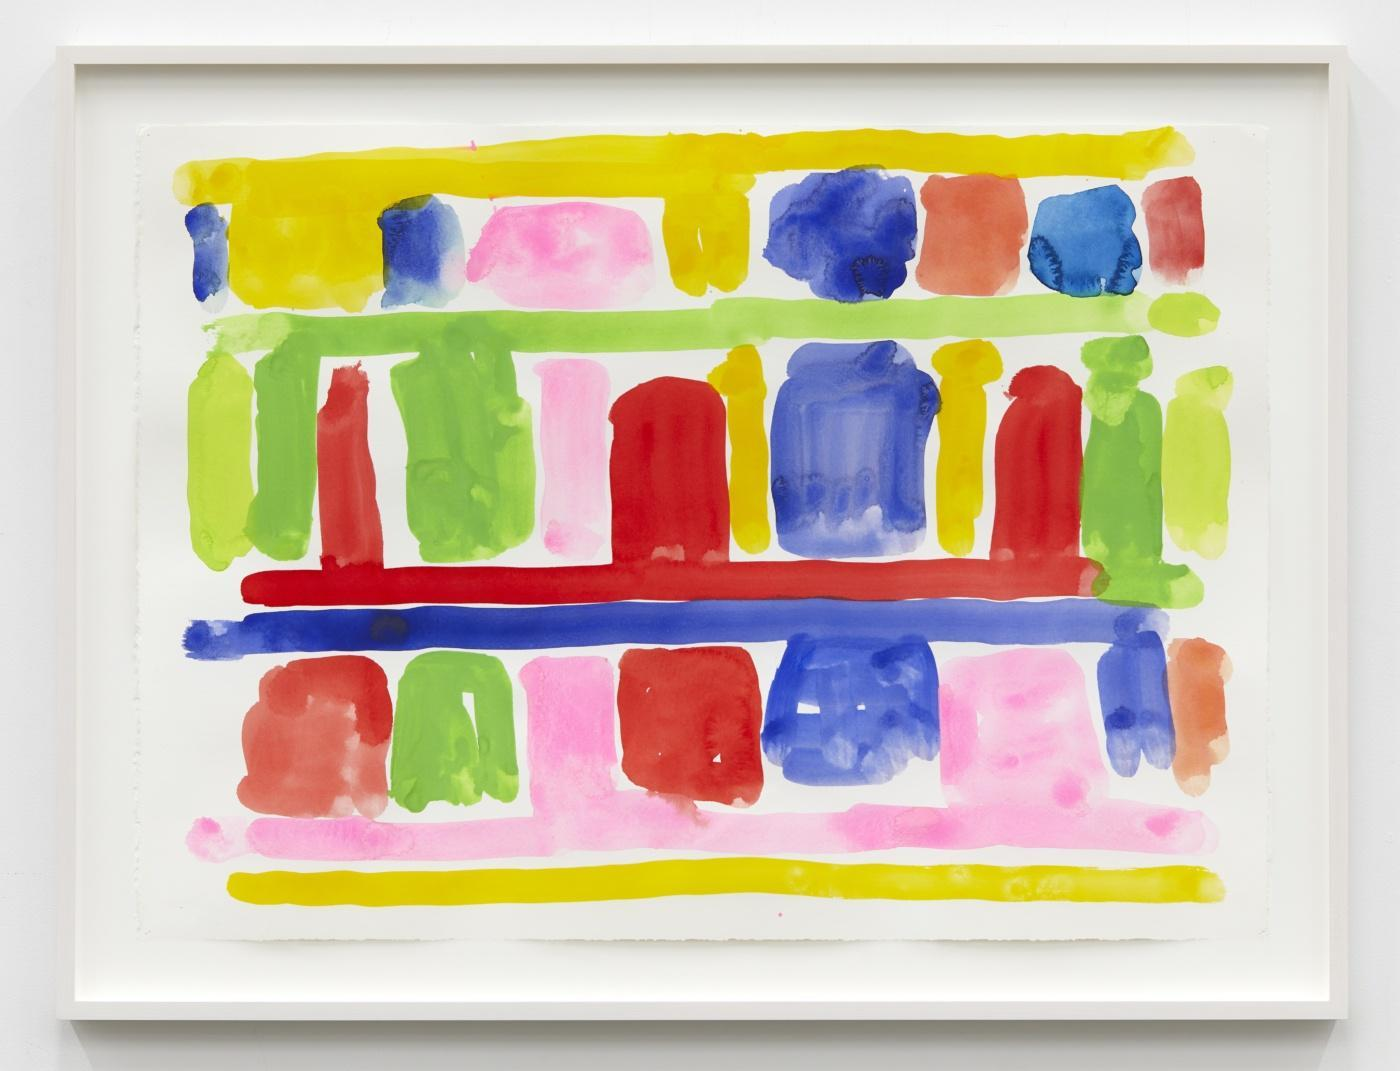 Stanley Whitney,/Untitled/, 2017, gouache on paper, 55.88 × 77.47 cm